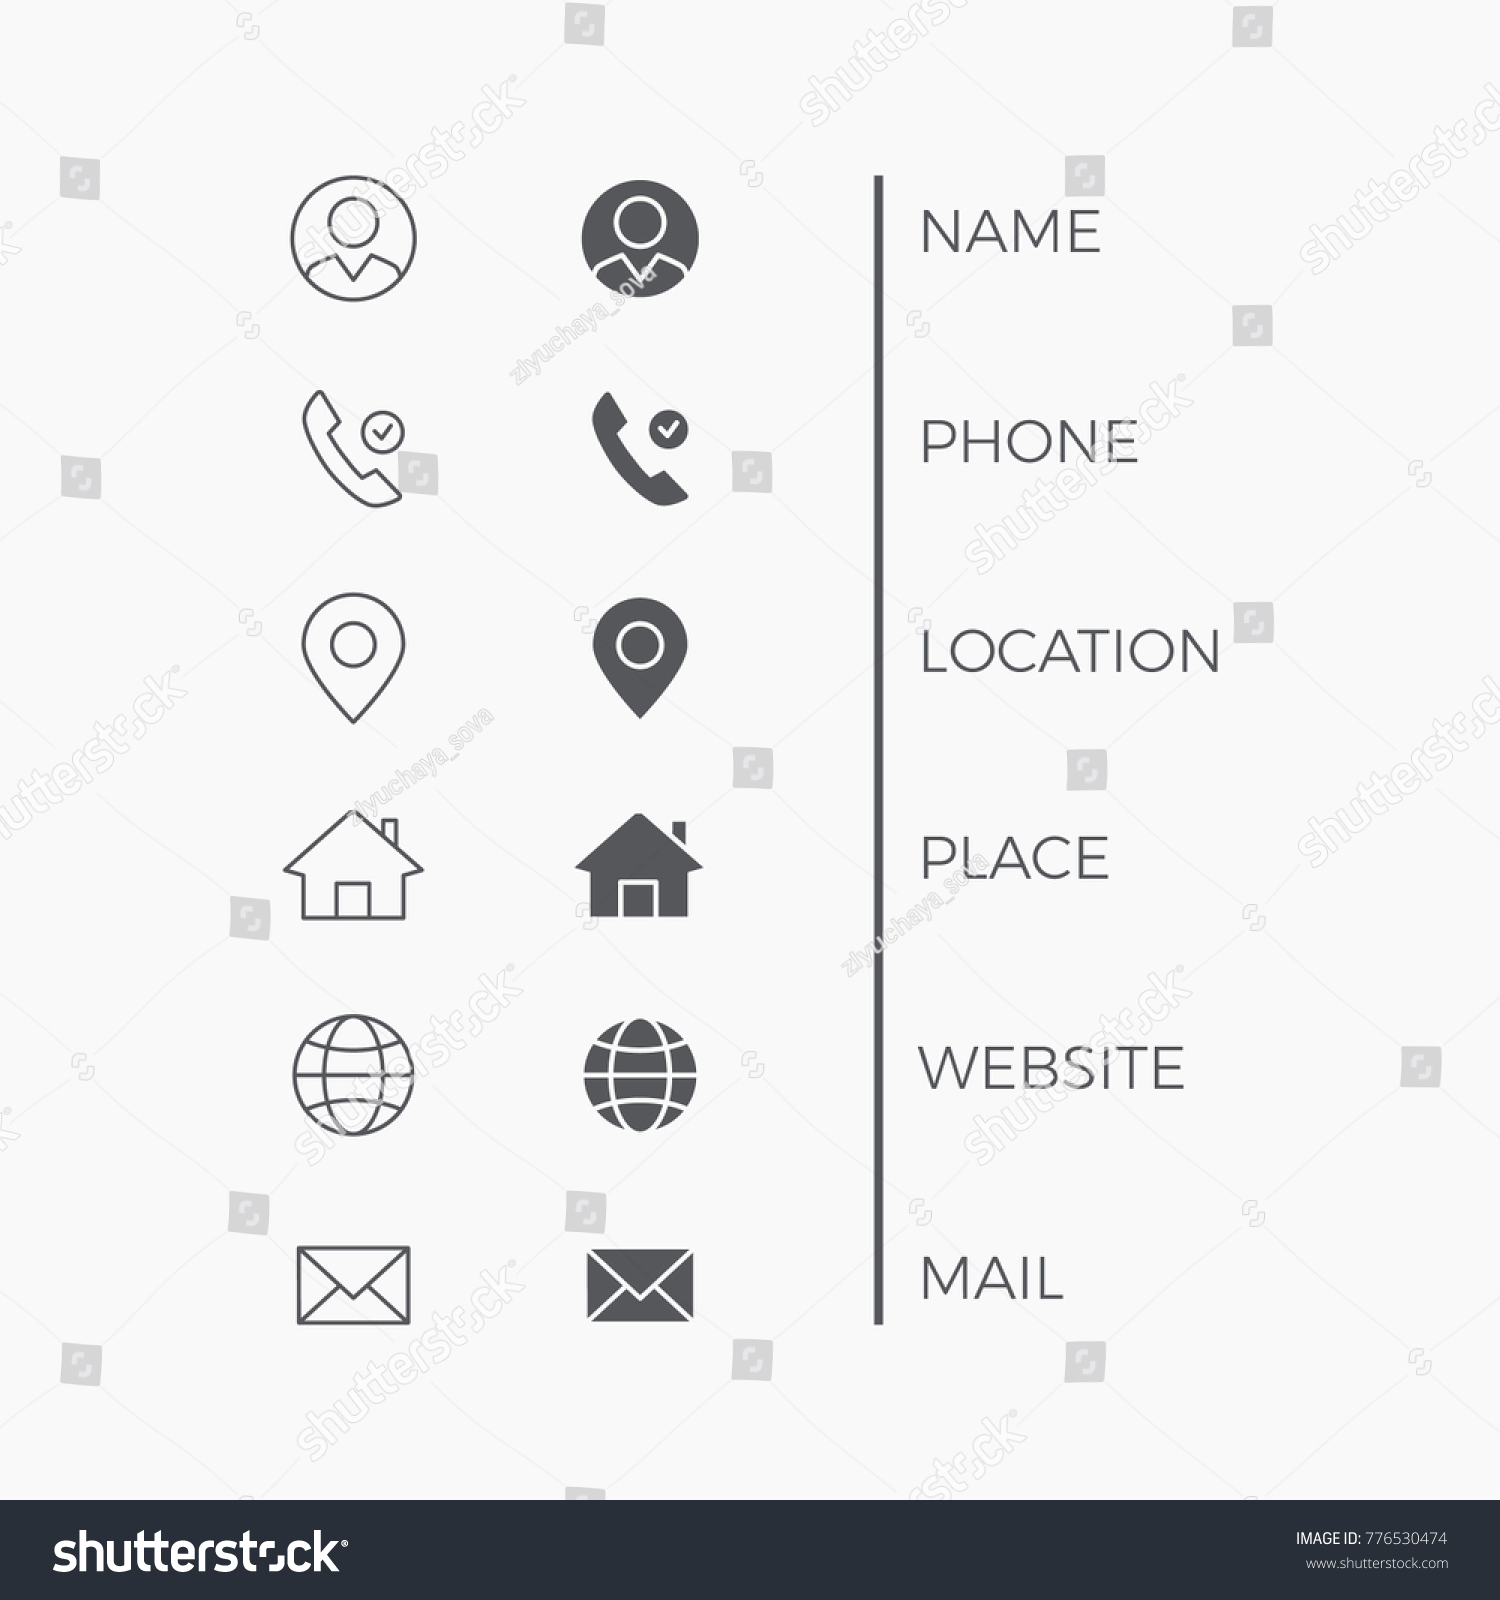 Icons Business Card Vector Thin Line Stock Photo (Photo, Vector ...